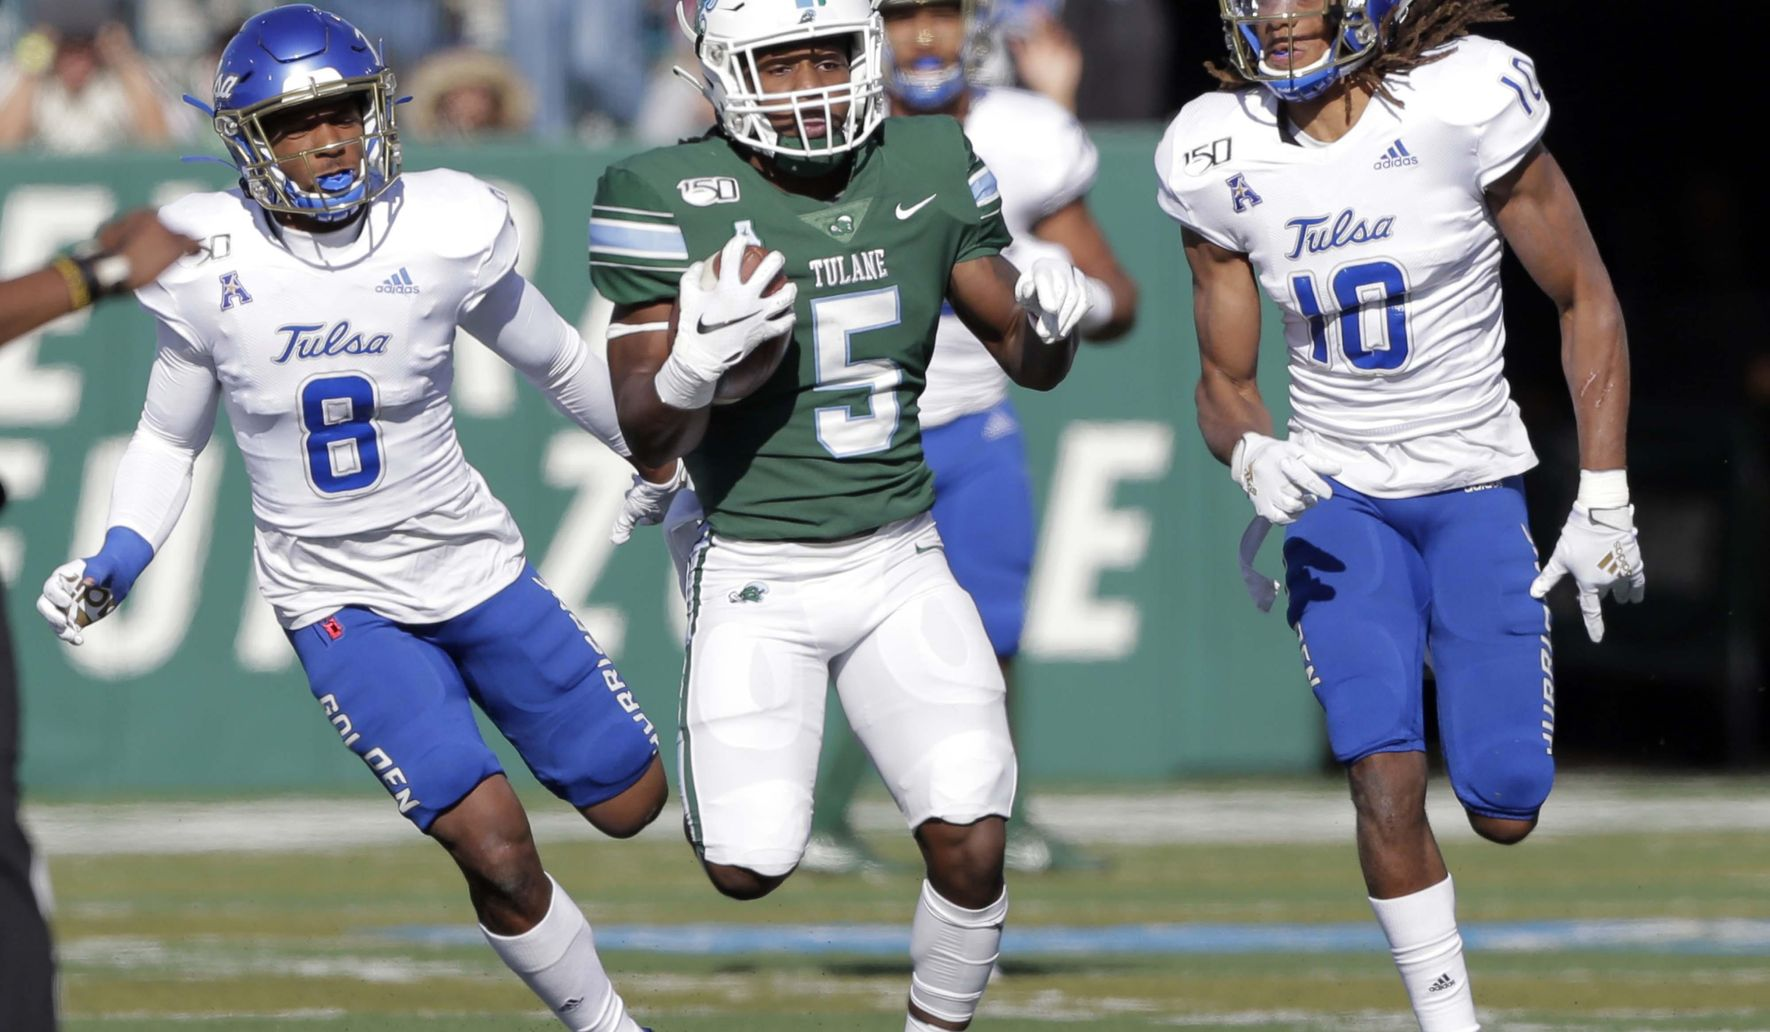 Tulsa_tulane_football_74524_c0-602-4000-2934_s1770x1032